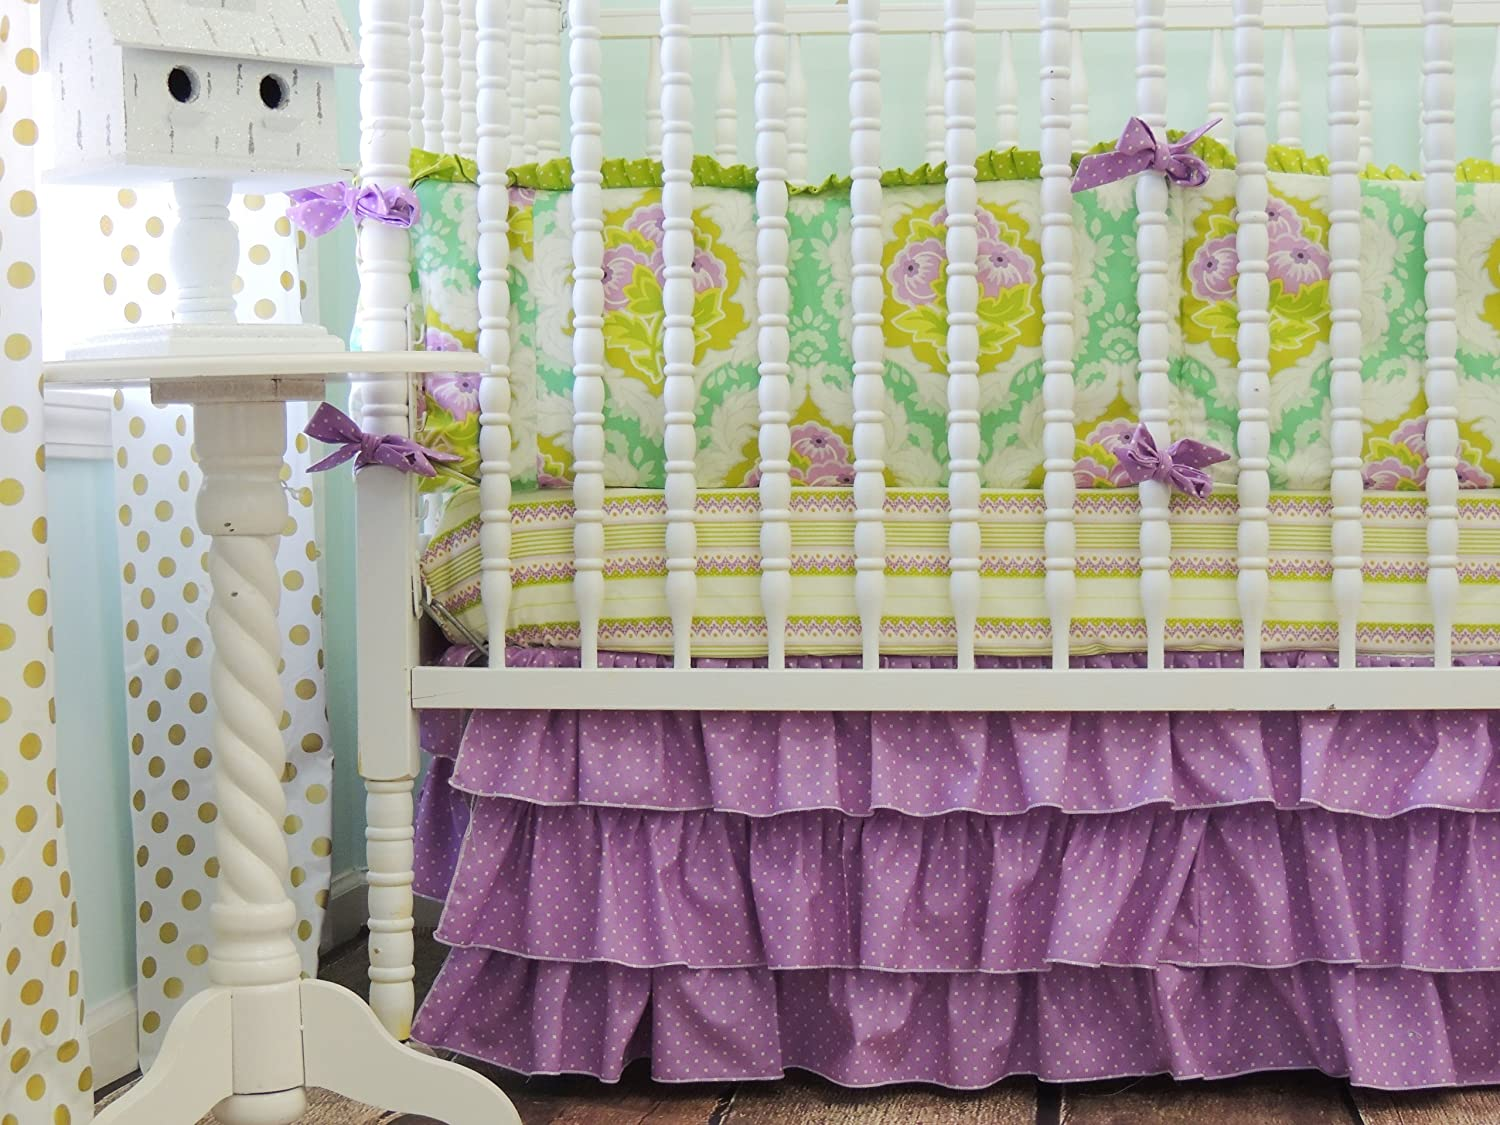 Tushies and Tantrums Boutique Crib Set, Emerald Green and Orchid by Tushies and Tantrums   B00JUR4LGI